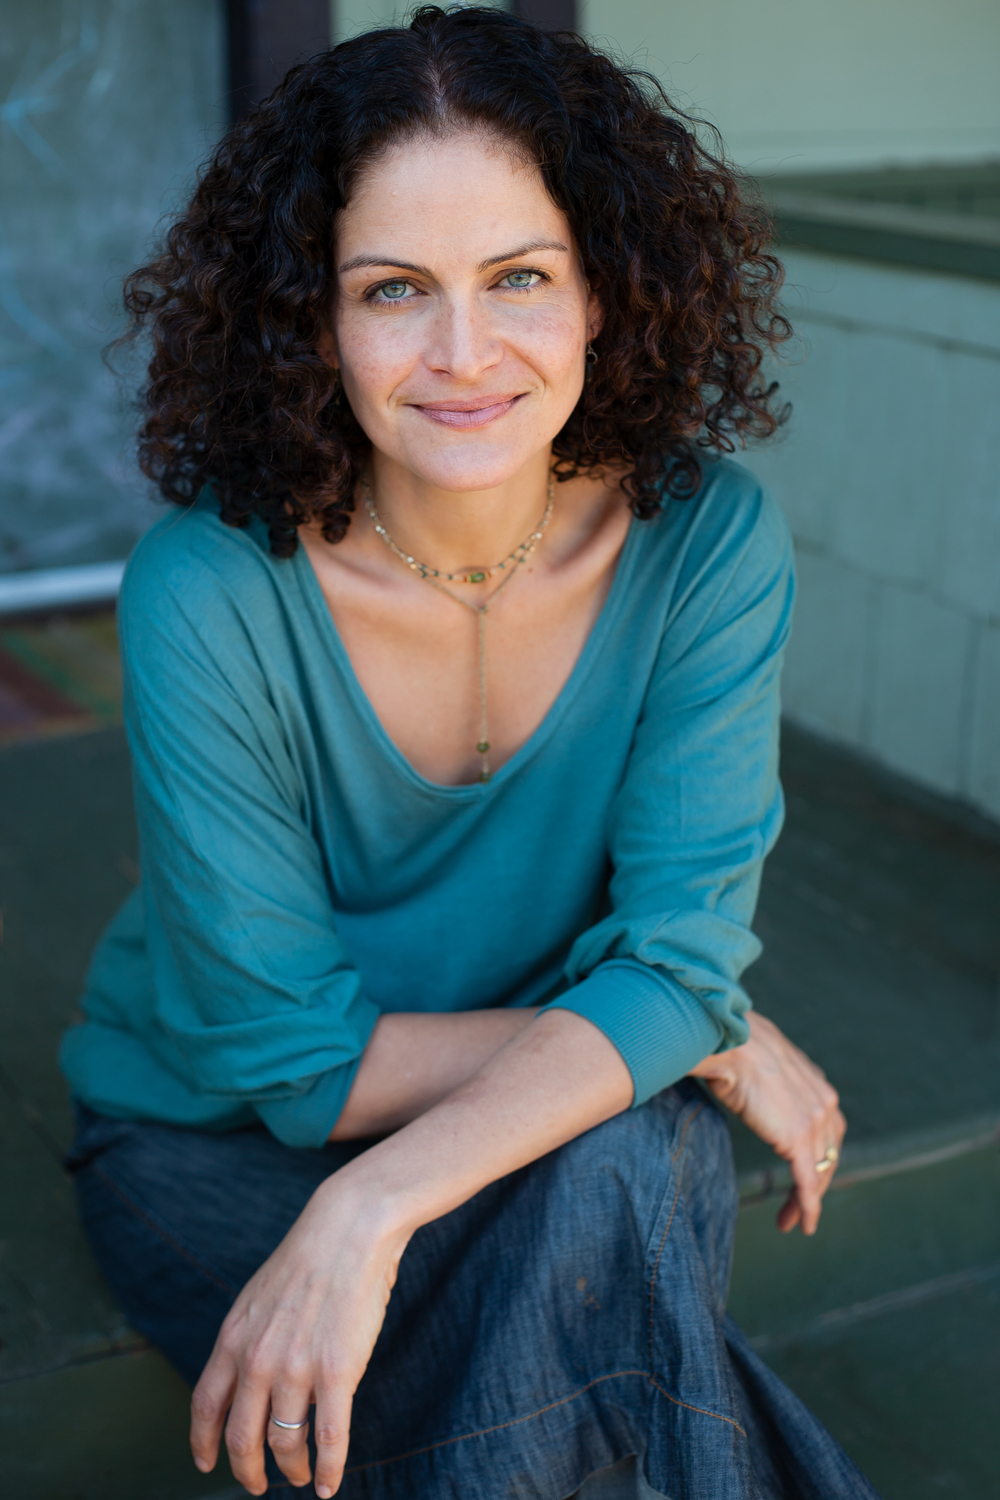 August 9, 2015      Hala Khoury, M.A., E-Ryt,  has been teaching yoga and the movement arts for over 20 years.  She earned her B.A. in Psychology from Columbia University and her M.A. in Counseling Psychology from Pacifica Graduate Institute.  She is trained in Somatic Experiencing, a body-based psychotherapy that addresses trauma and its symptoms.  Hala is a co-founder of Off the Mat, Into the World, a training organization that bridges yoga and activism within a social justice framework.  She leads trauma informed yoga training nationally.  She has been in private practice for 10 years working with individuals and couples.  Hala also trains direct service providers in vicarious trauma and self-care.  She lives in Venice, CA with her husband and two sons where she also teaches public yoga classes weekly.  Hala is Lebanese, and her husband is half African American, and half Jewish.  She is passionate about engaging in dialogues about race, culture, and class; and is always in inquiry around how to raise children who are aware of the larger context that they live in.